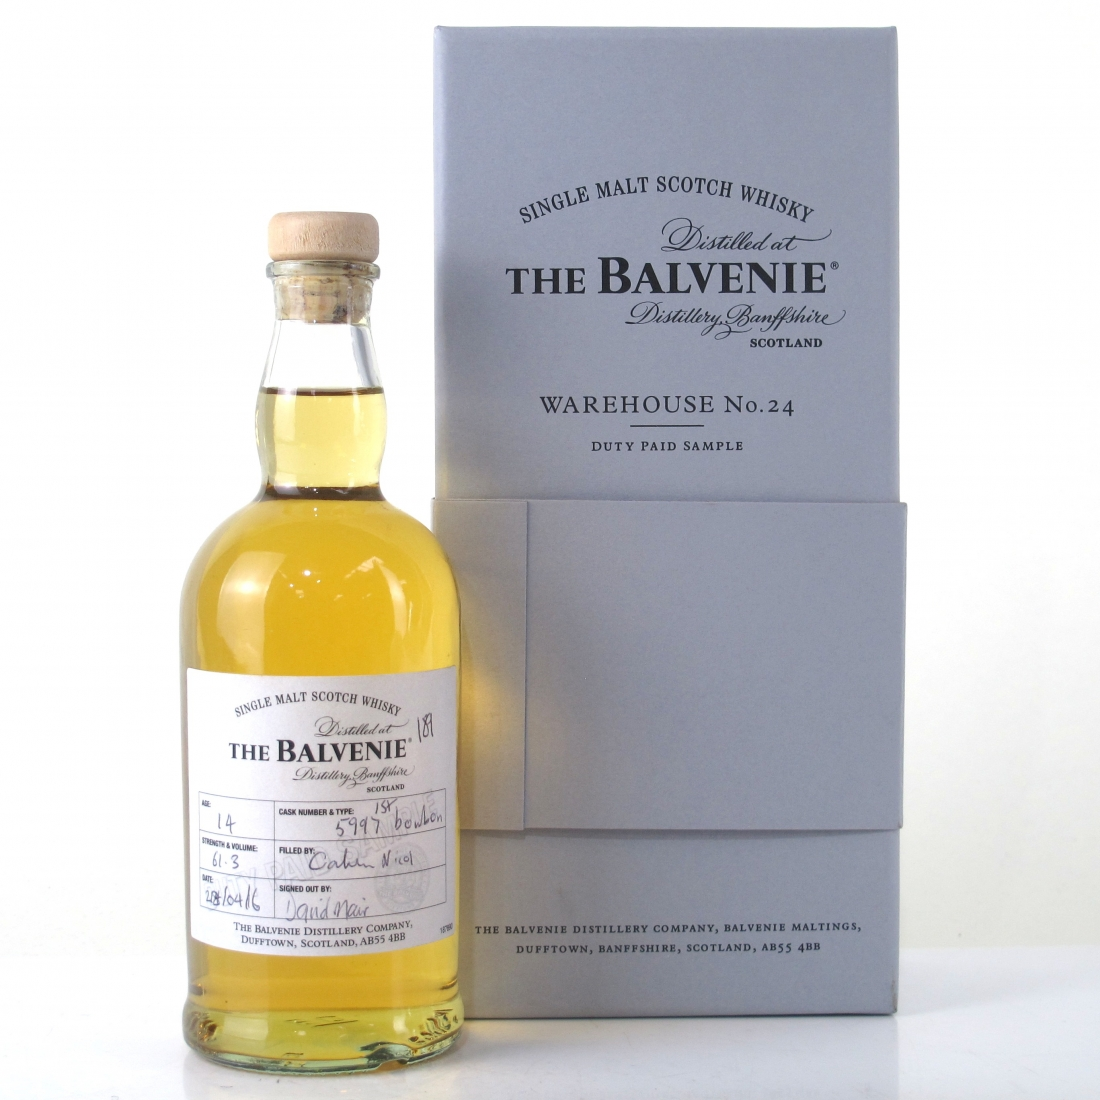 Balvenie 14 Year Old First Fill Bourbon 20cl / Warehouse 24 Sample